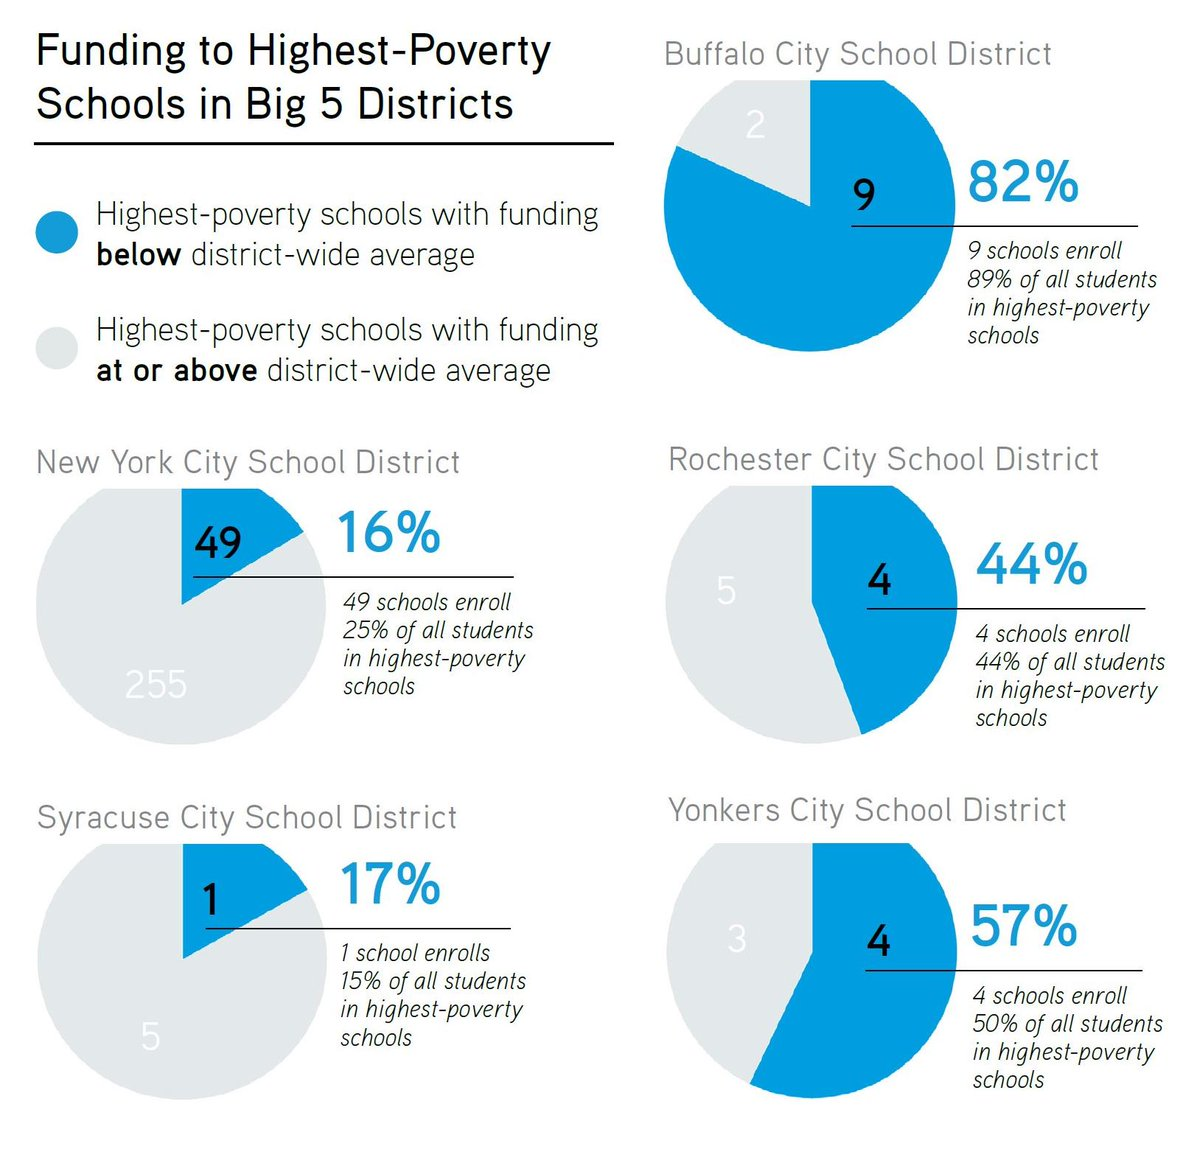 We analyzed newly available data about school-level funding in New York's Big 5 school districts — Buffalo, NYC, Rochester, Syracuse, and Yonkers — and found that many of the highest-poverty schools receive funding below the district average. https://t.co/axKaoIrtHX